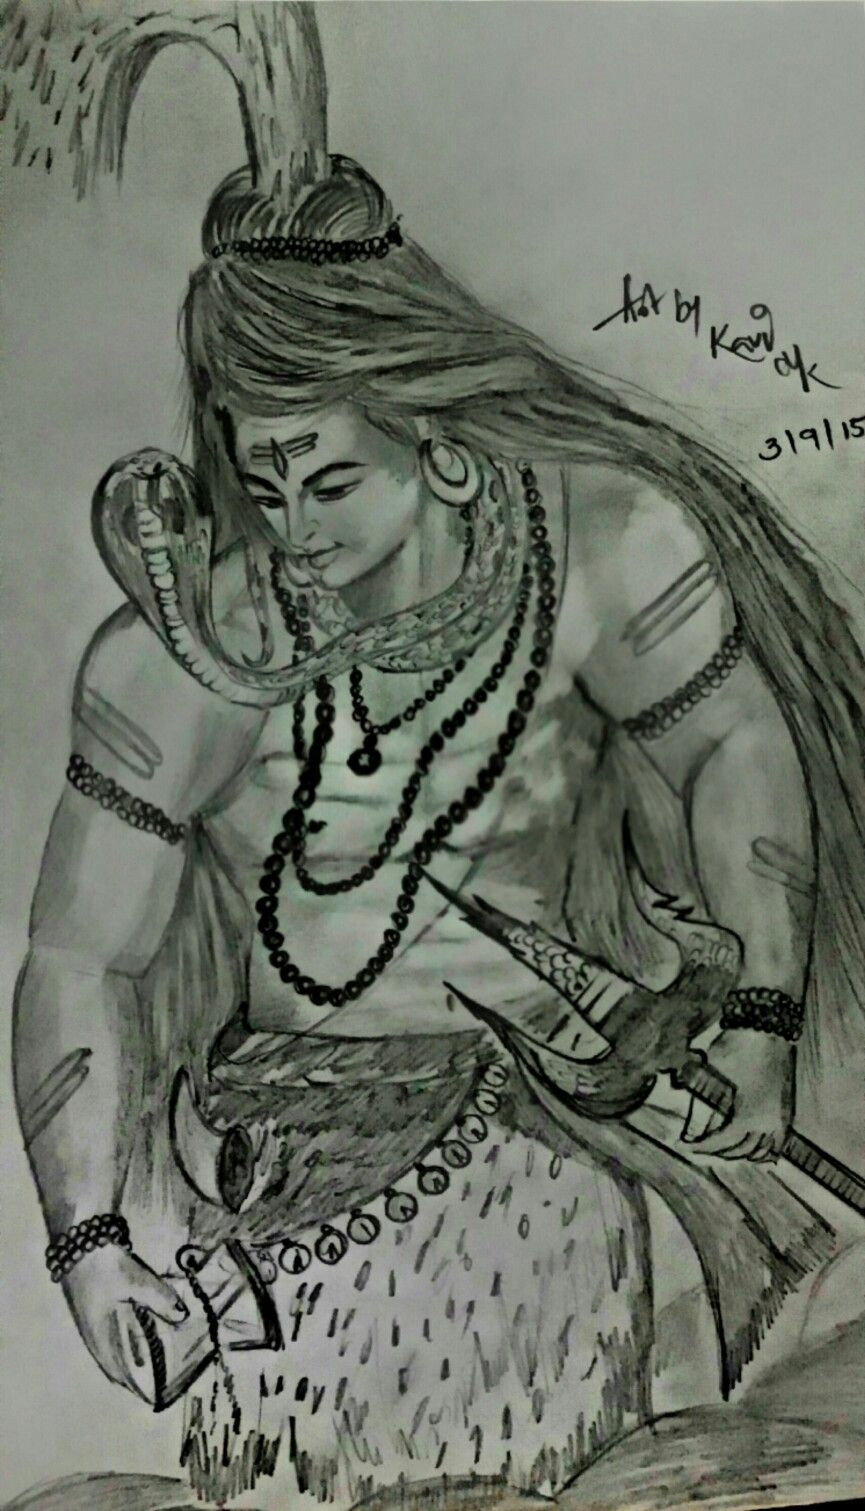 Om namah shivaya lord shiva samurai warriors death pencil shiva